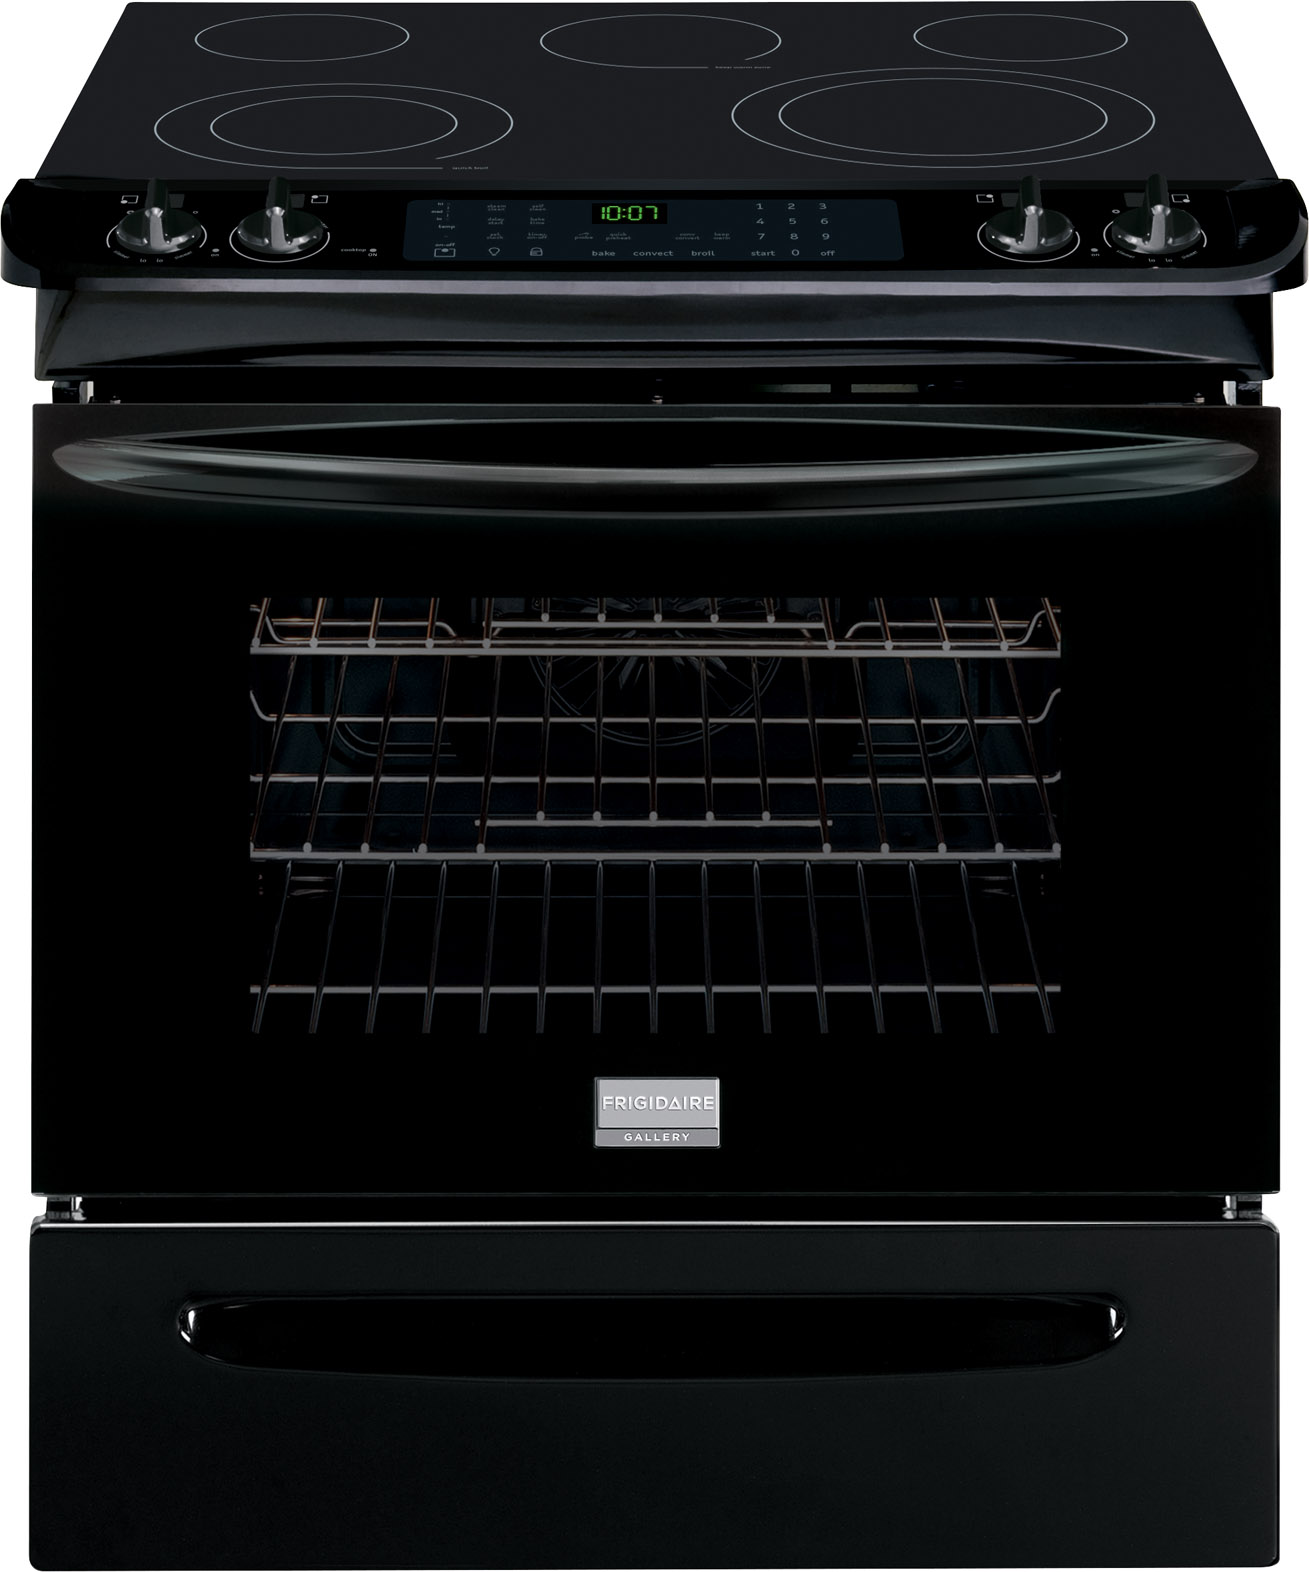 Archappliance Frigidaire Gallery Series Fges3065p 30